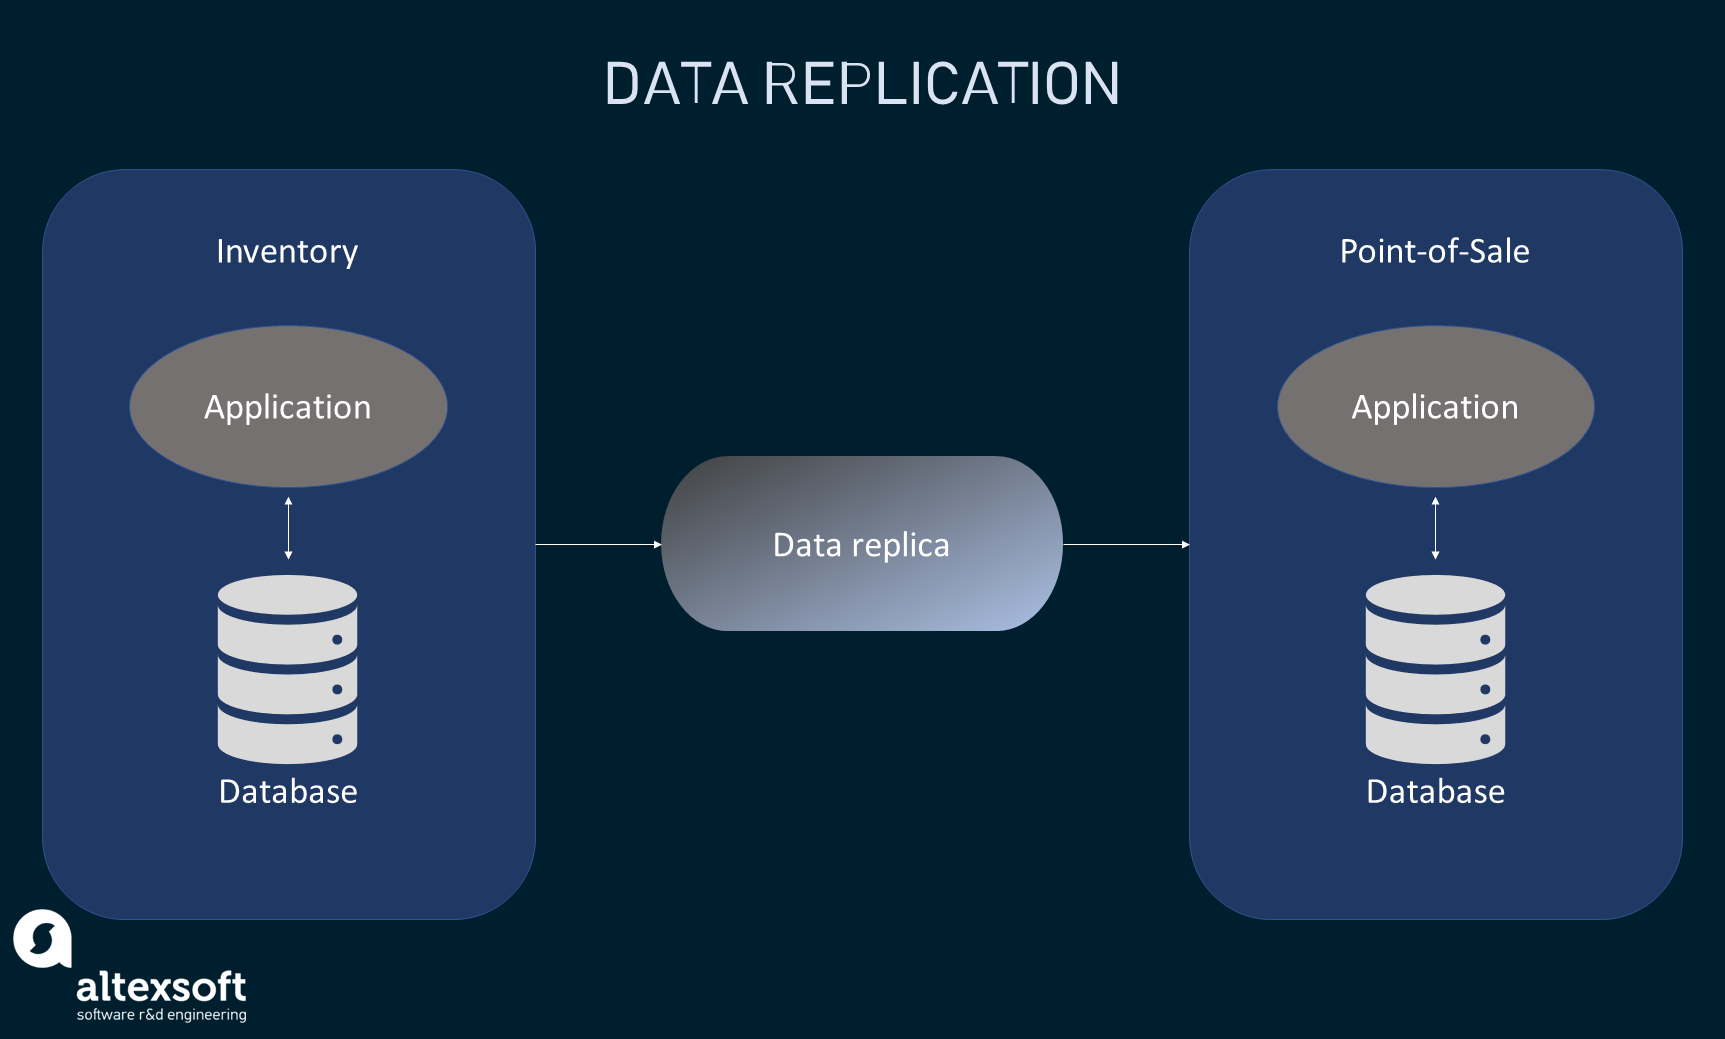 Inventory data is replicated to the point-of-sale database